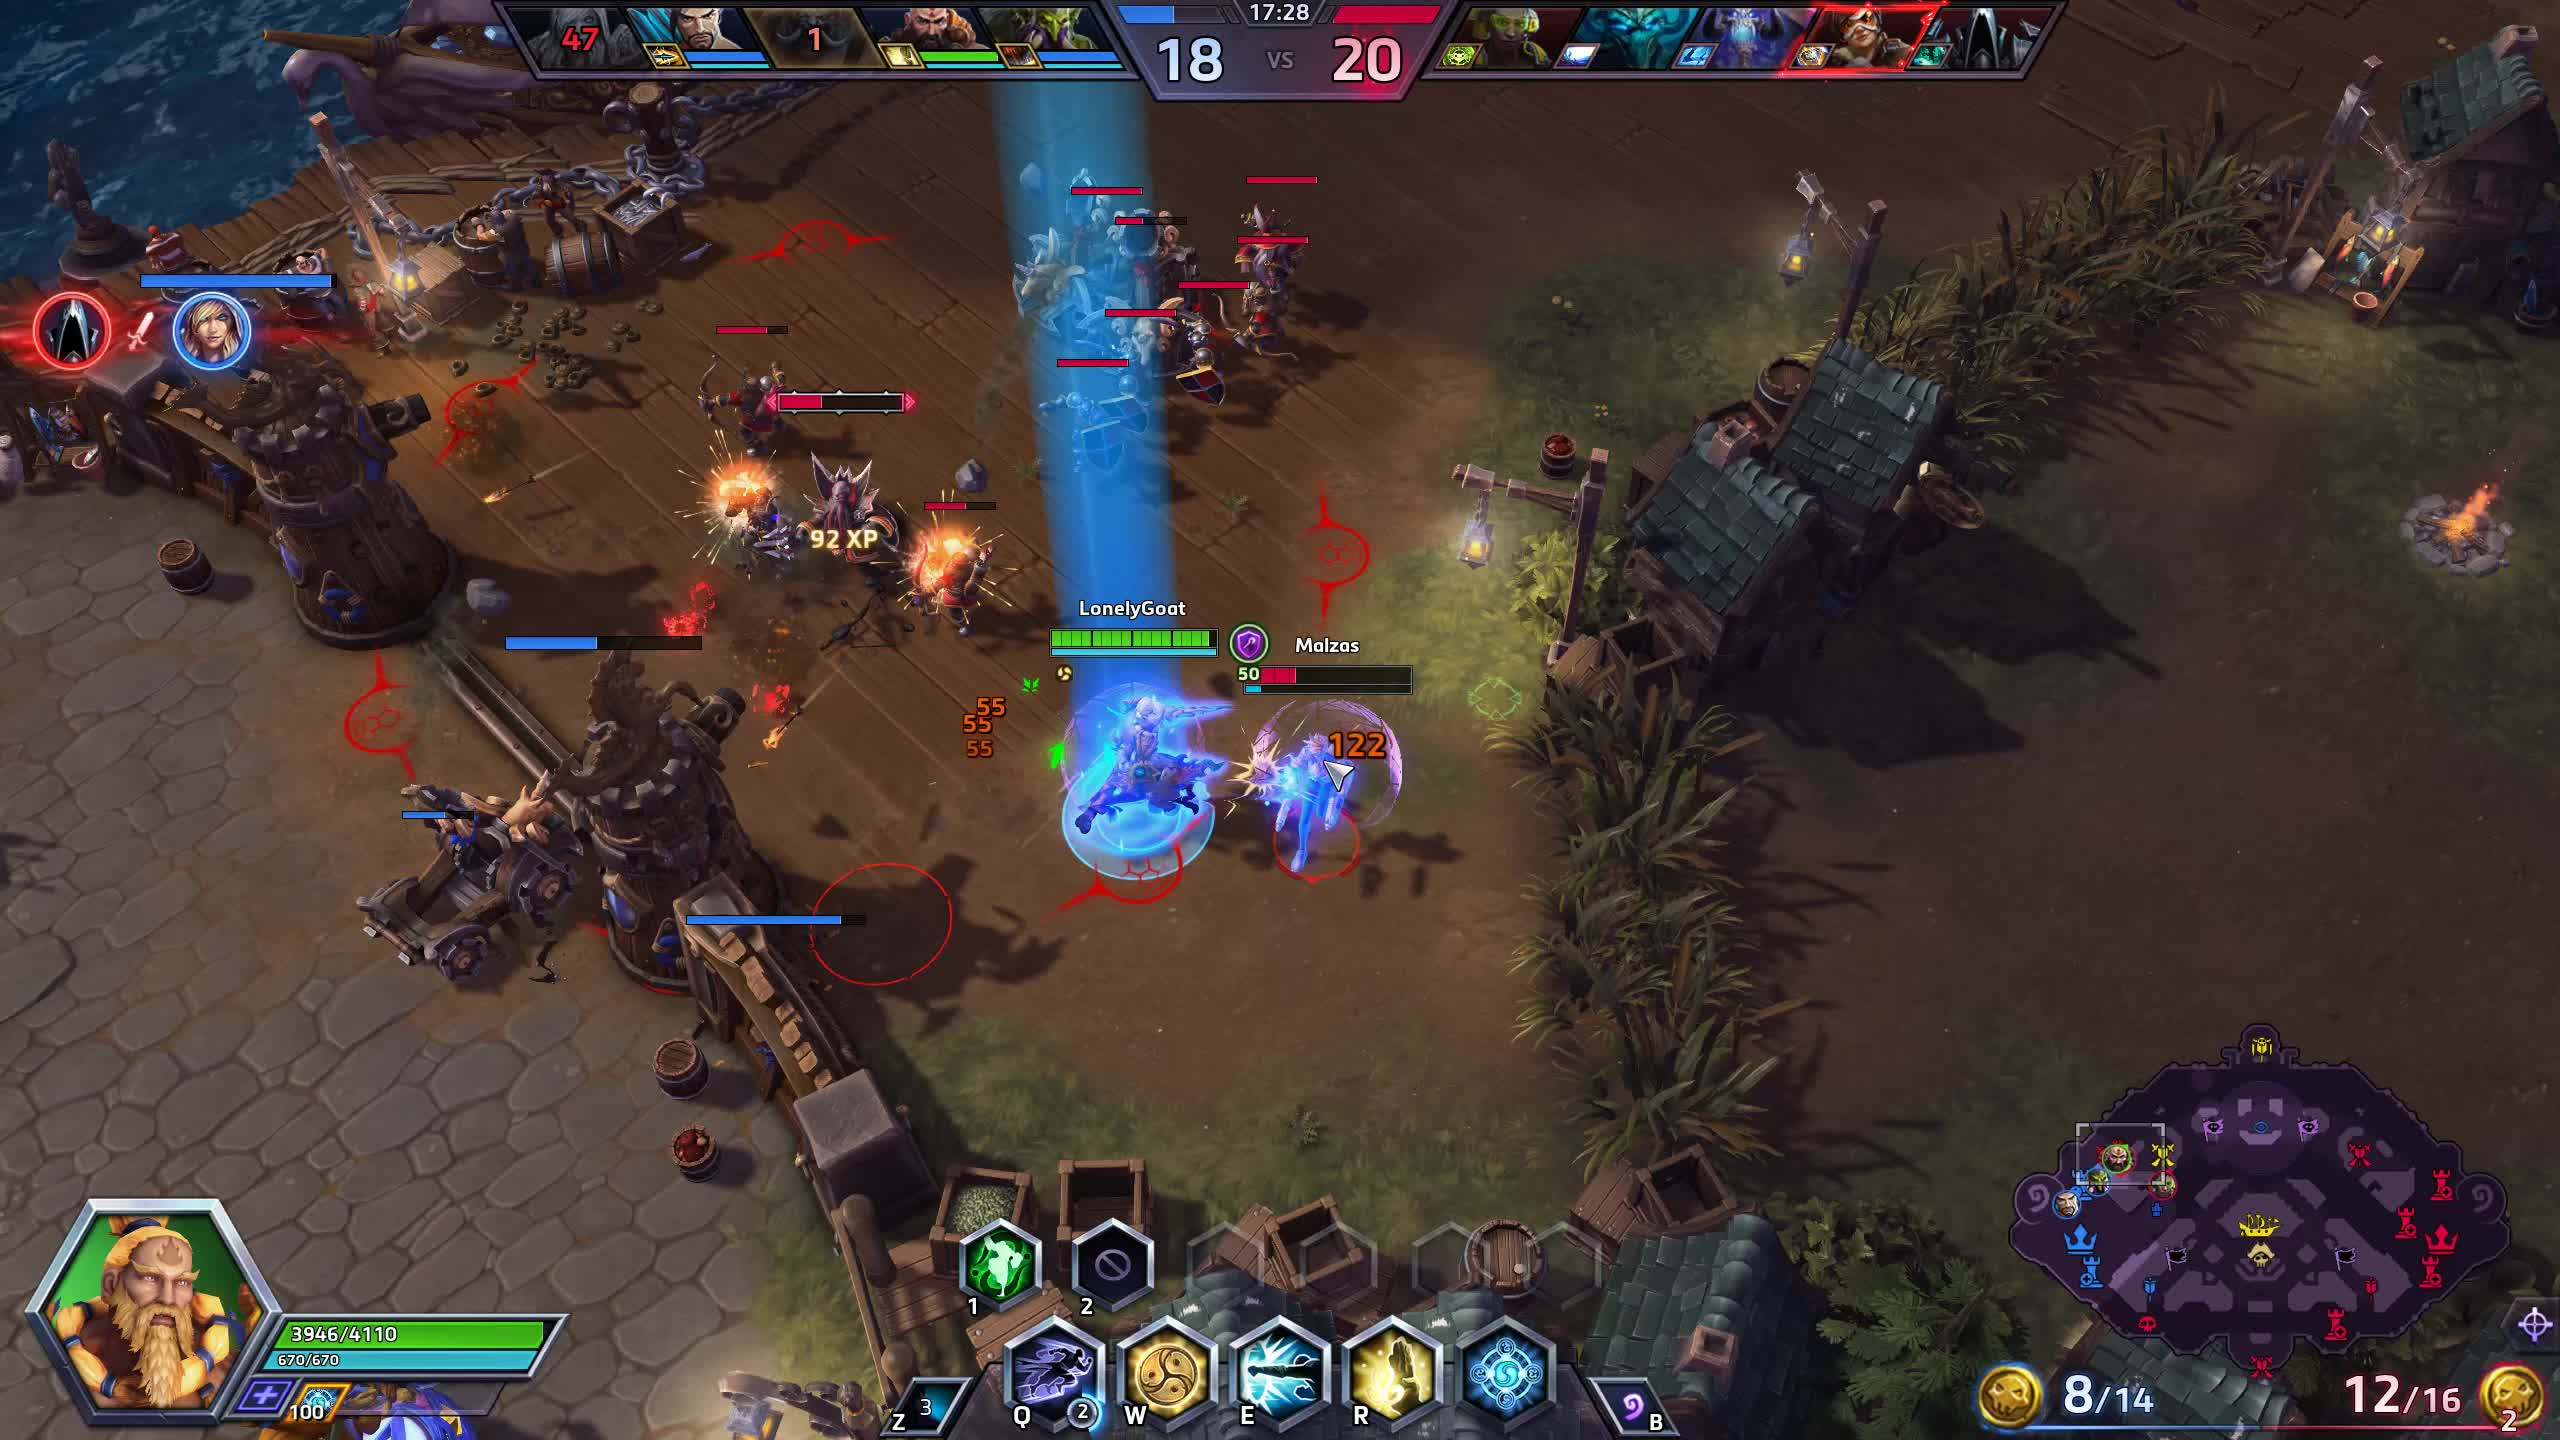 heroesofthestorm, vlc-record-2019-03-09-12h40m33s-Heroes of the Storm 2019.03.01 - 23.20.14.02.DVR.mp4- GIFs